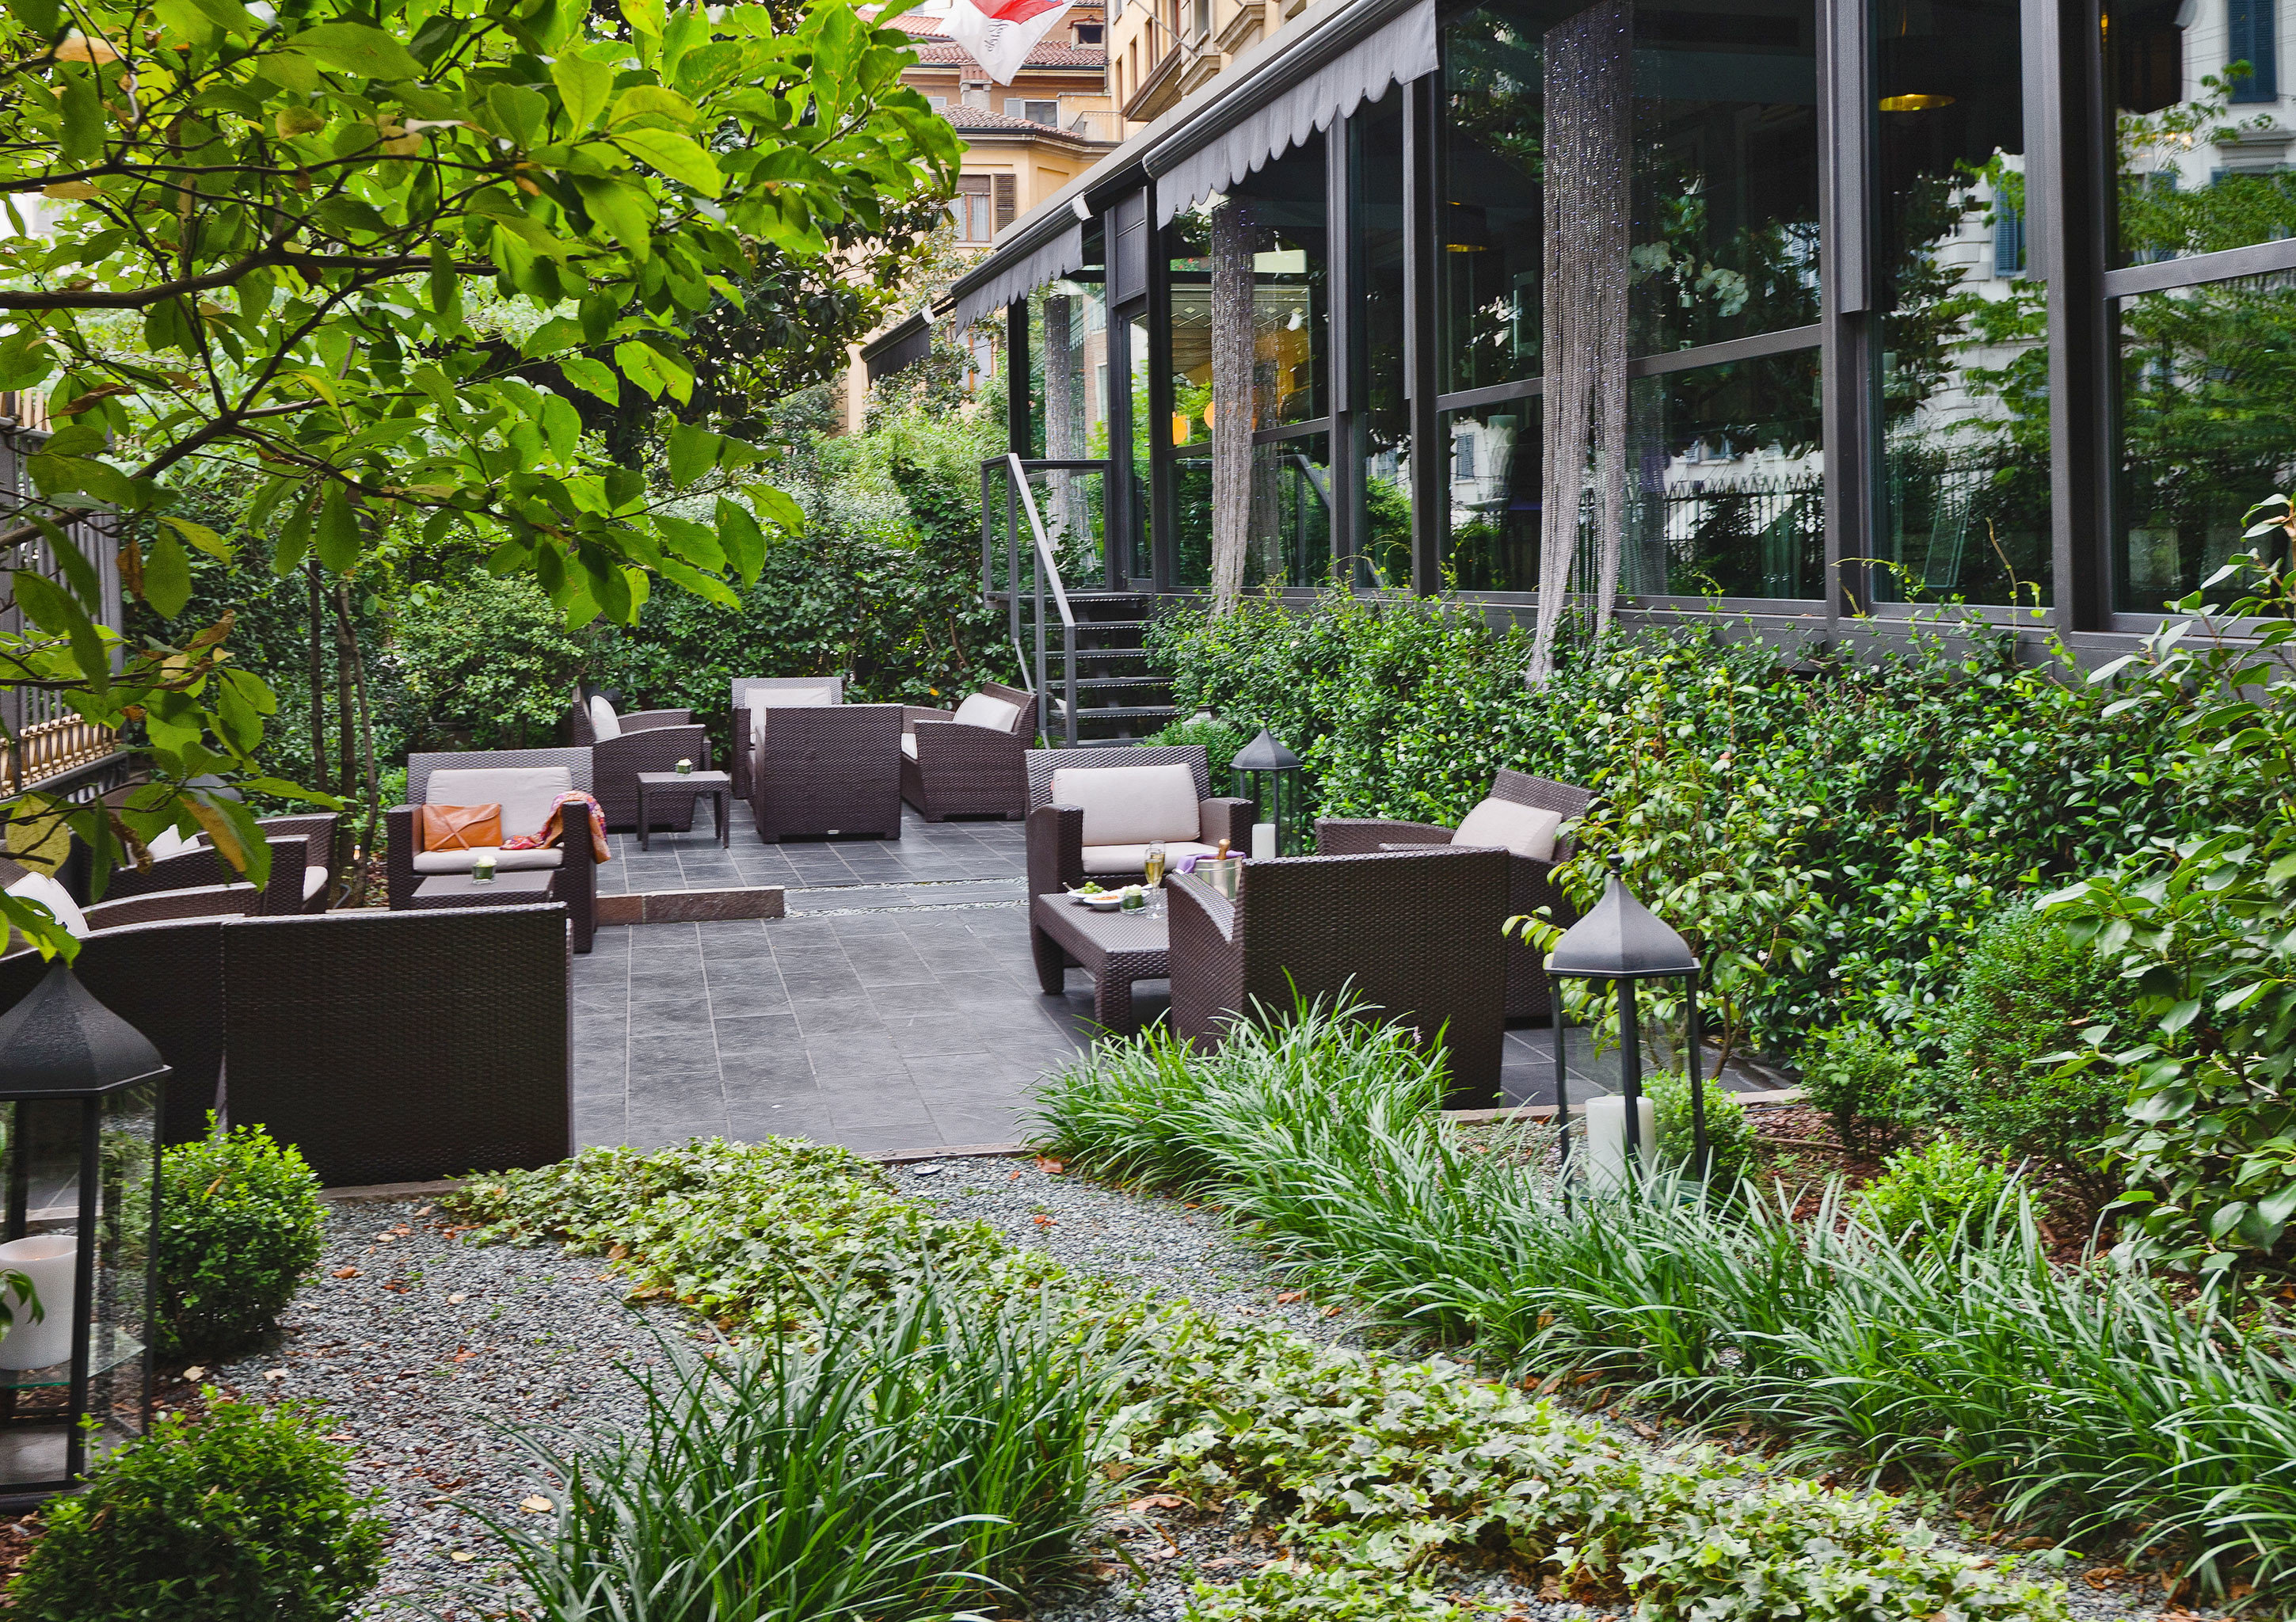 Boutique City Classic Dining Drink Eat Elegant Hotels tree outdoor yard Garden botany backyard Courtyard landscape architect flower lawn estate outdoor structure greenhouse landscaping walkway porch plant